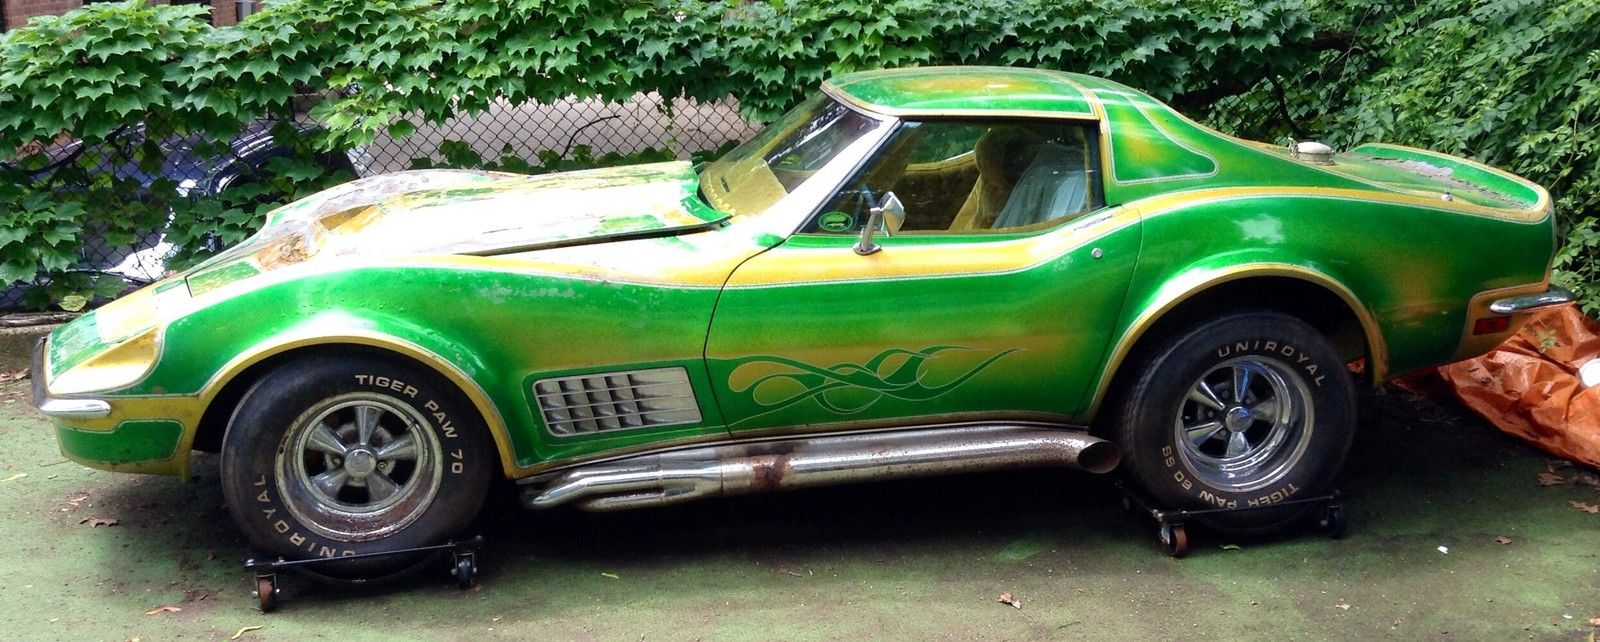 Former ISCA Corvette Unearthed: Baldwin-Motion Nose, Dual Quad Big Block, Wild Interior, Wow